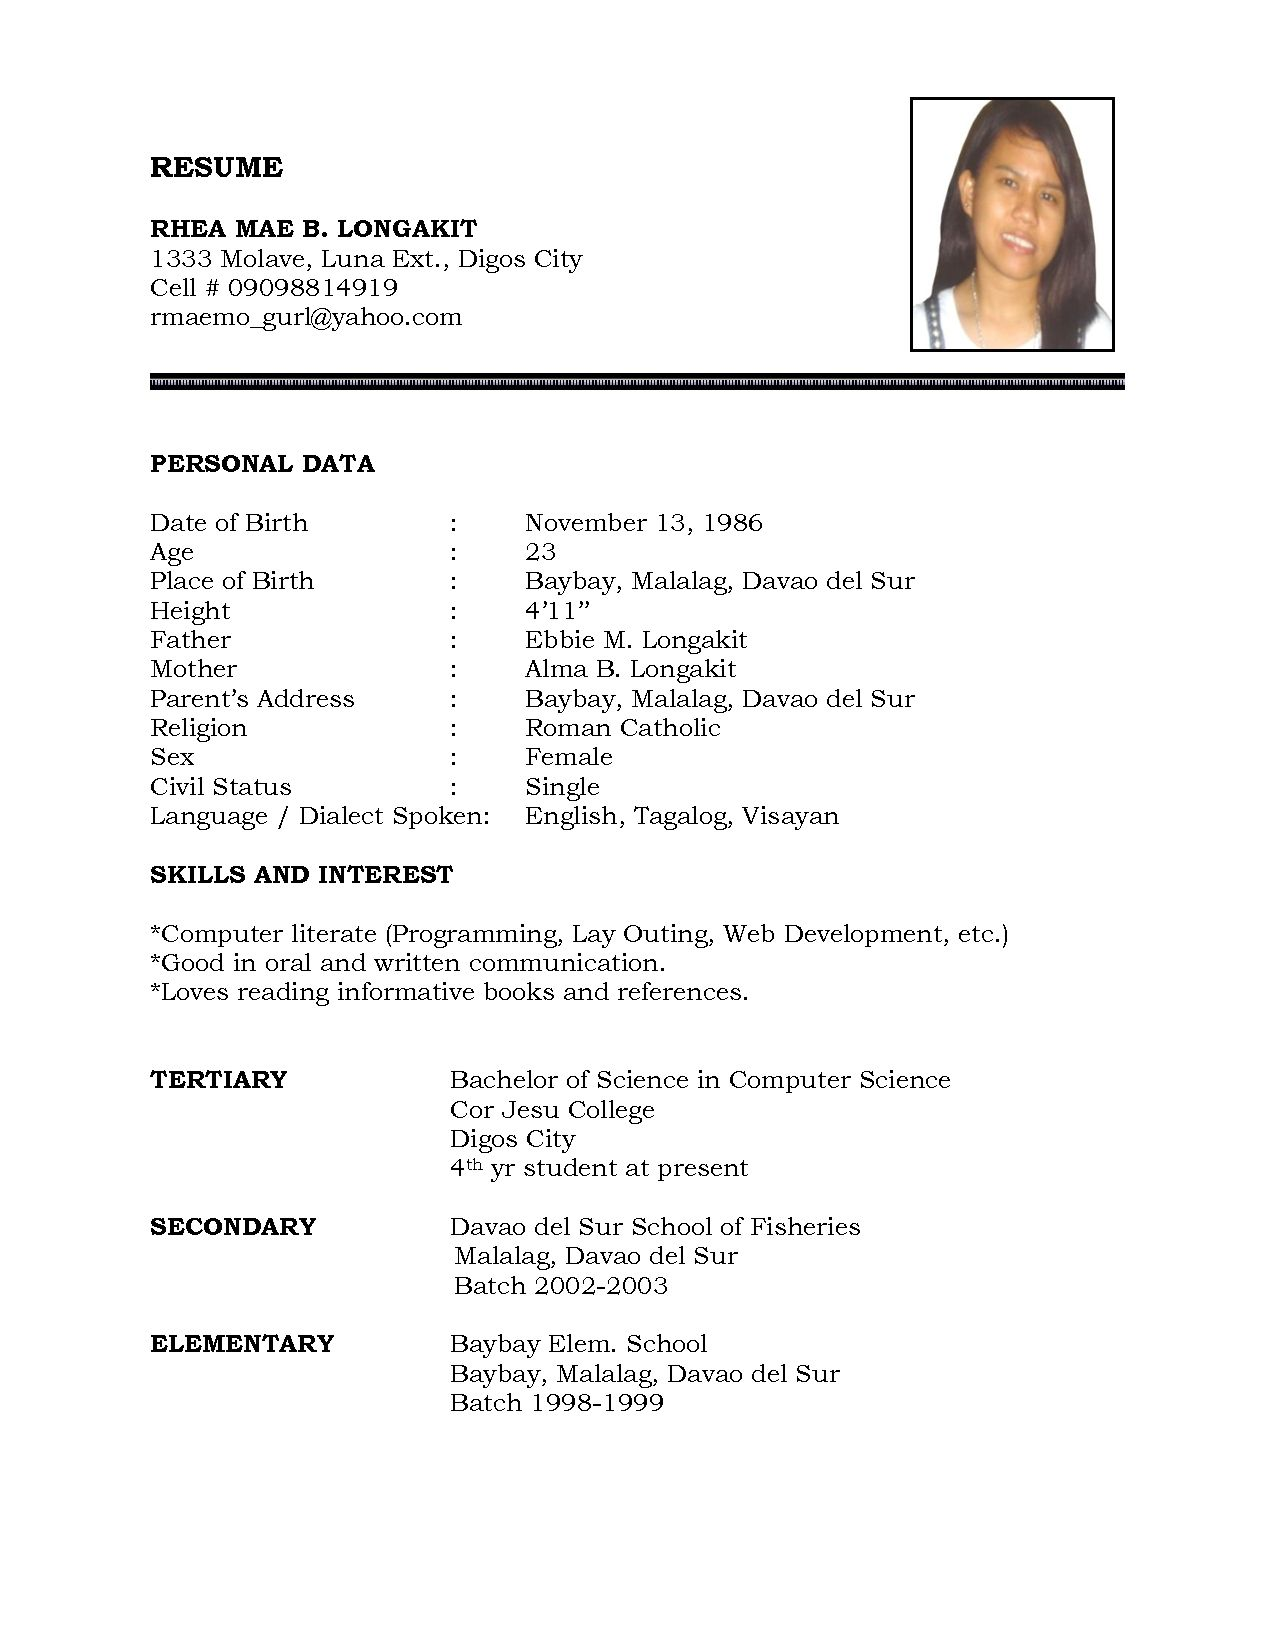 Simple Resume Examples Resume Sample Simple De9E2A60F The Simple Format Of Resume For Job